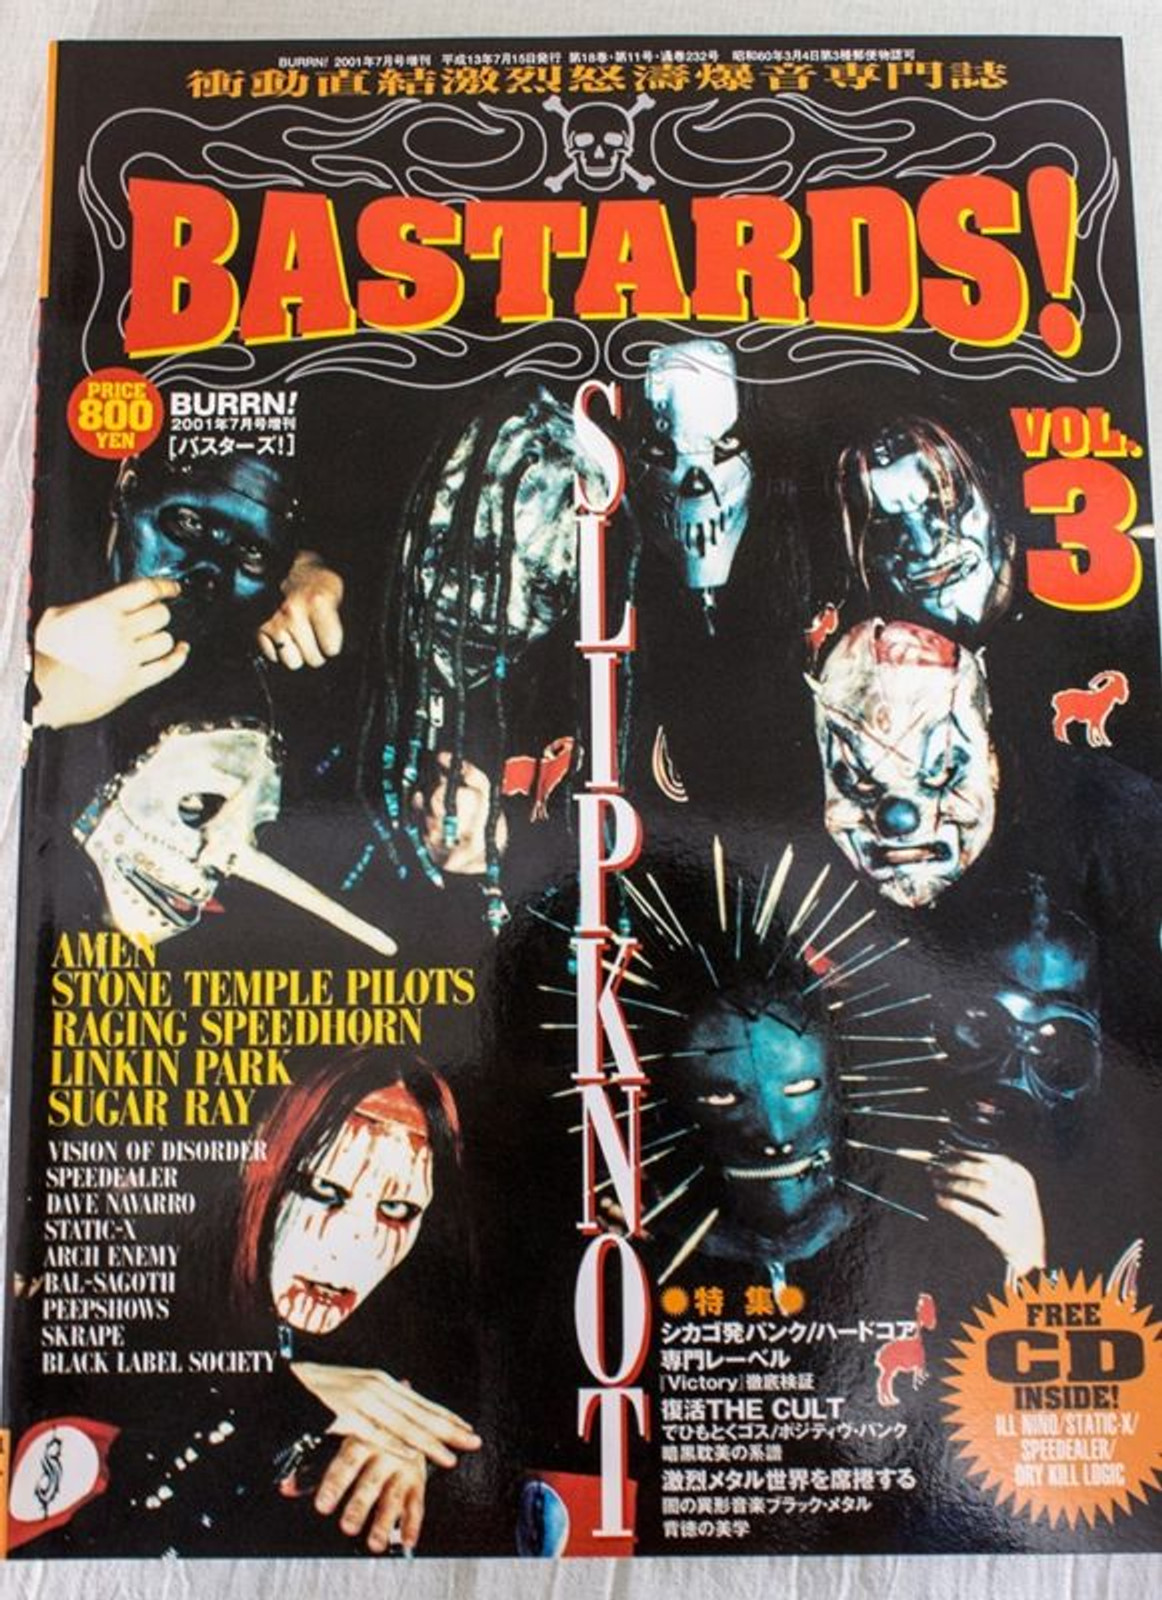 2001 Vol.3 BASTARDS! BURRN! Japan Magazine SLIPKNOT/LINKIN PARK/RACING SPEEDHORN